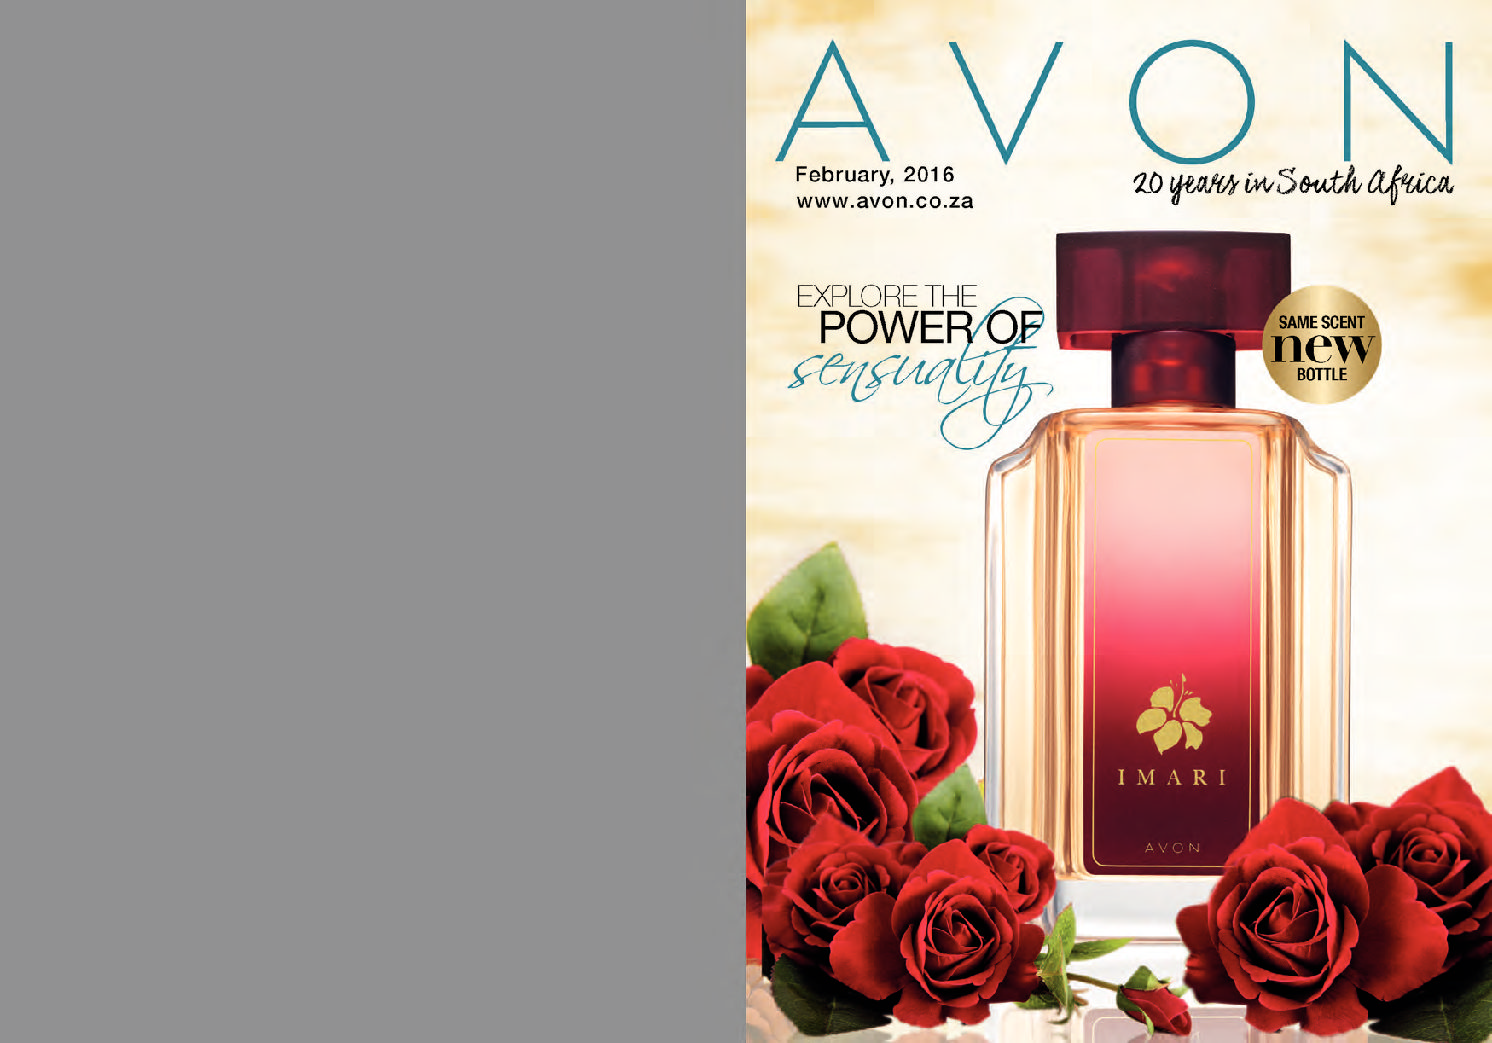 how to become an avon representative south africa